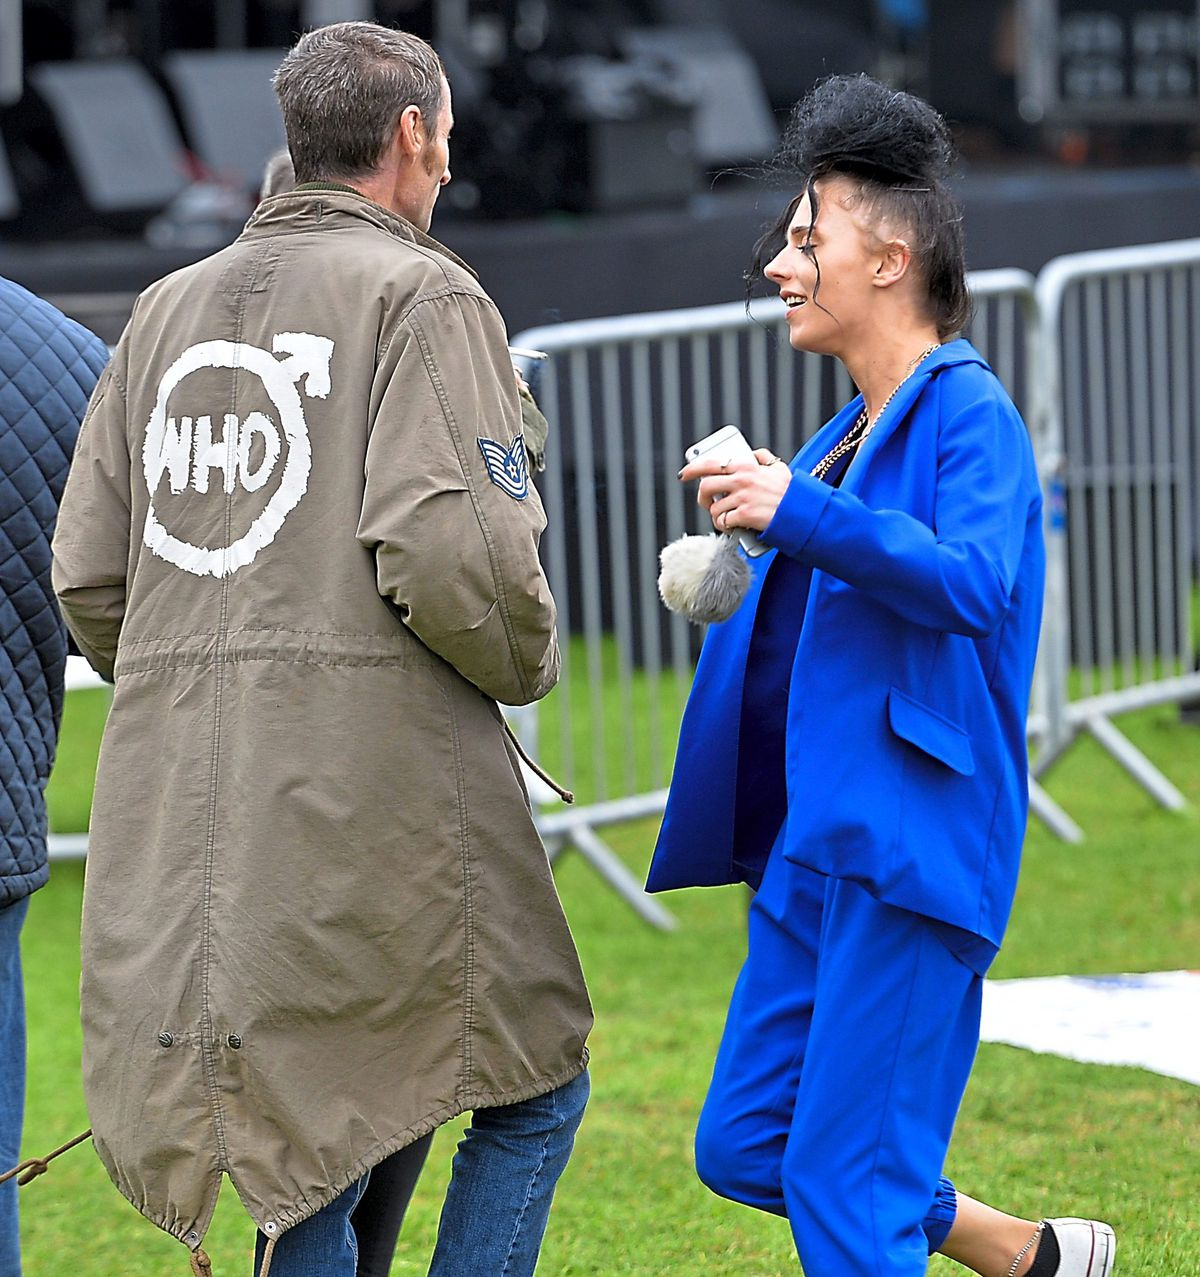 It was the perfect day out for mods young and old